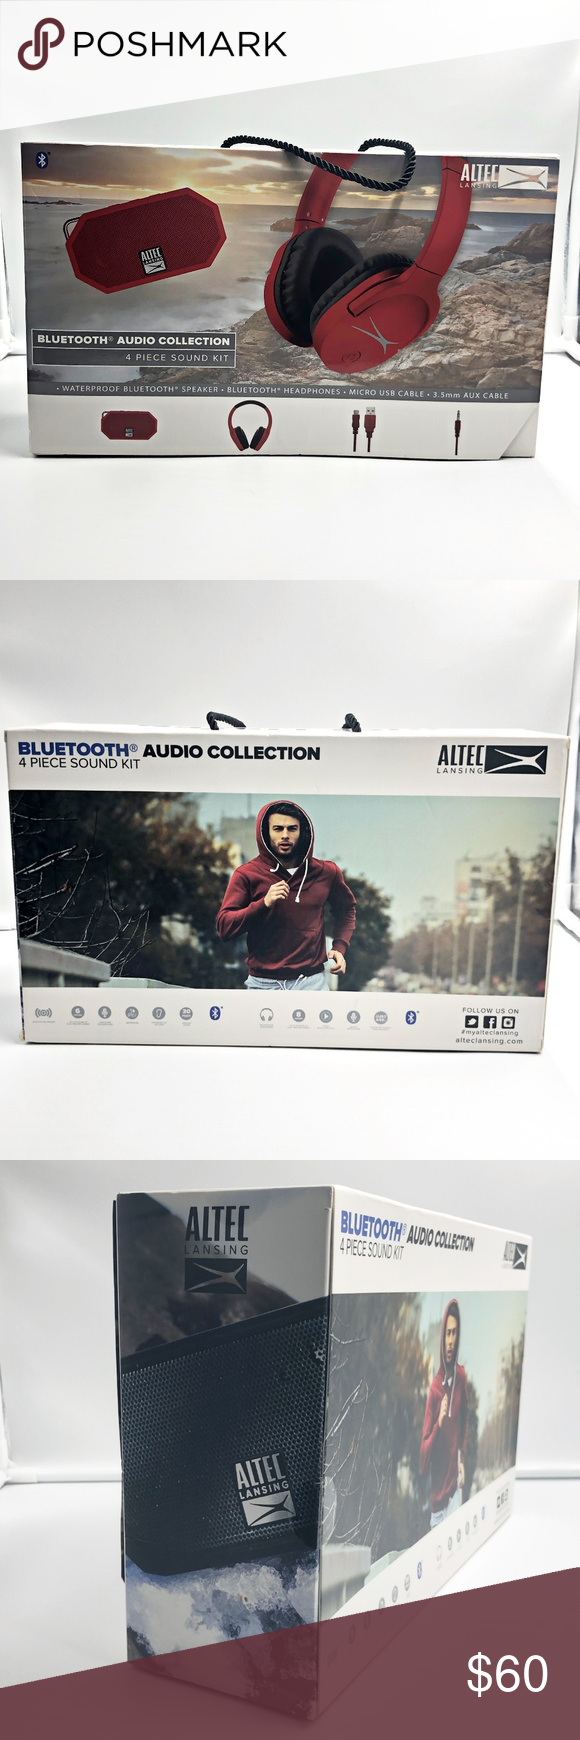 ALTEC Lansing | Bluetooth Collection 4 piece kit ALTEC